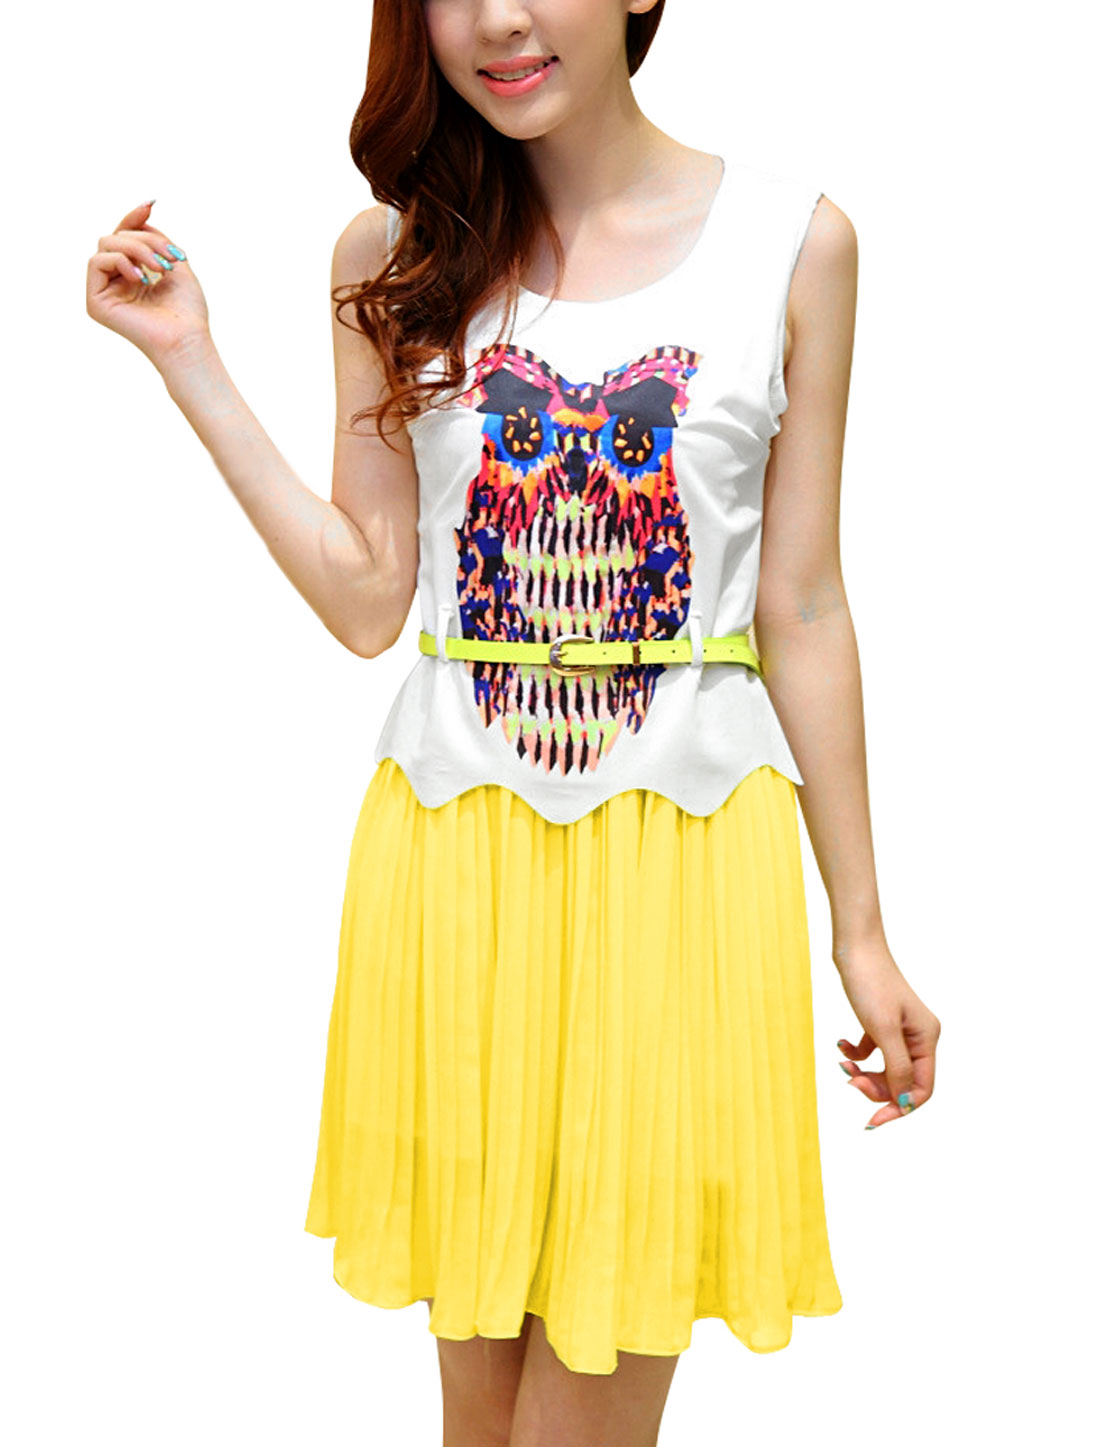 Women Chic Owl Prints Sleeveless Chiffon Splice Light Yellow White Dress XS